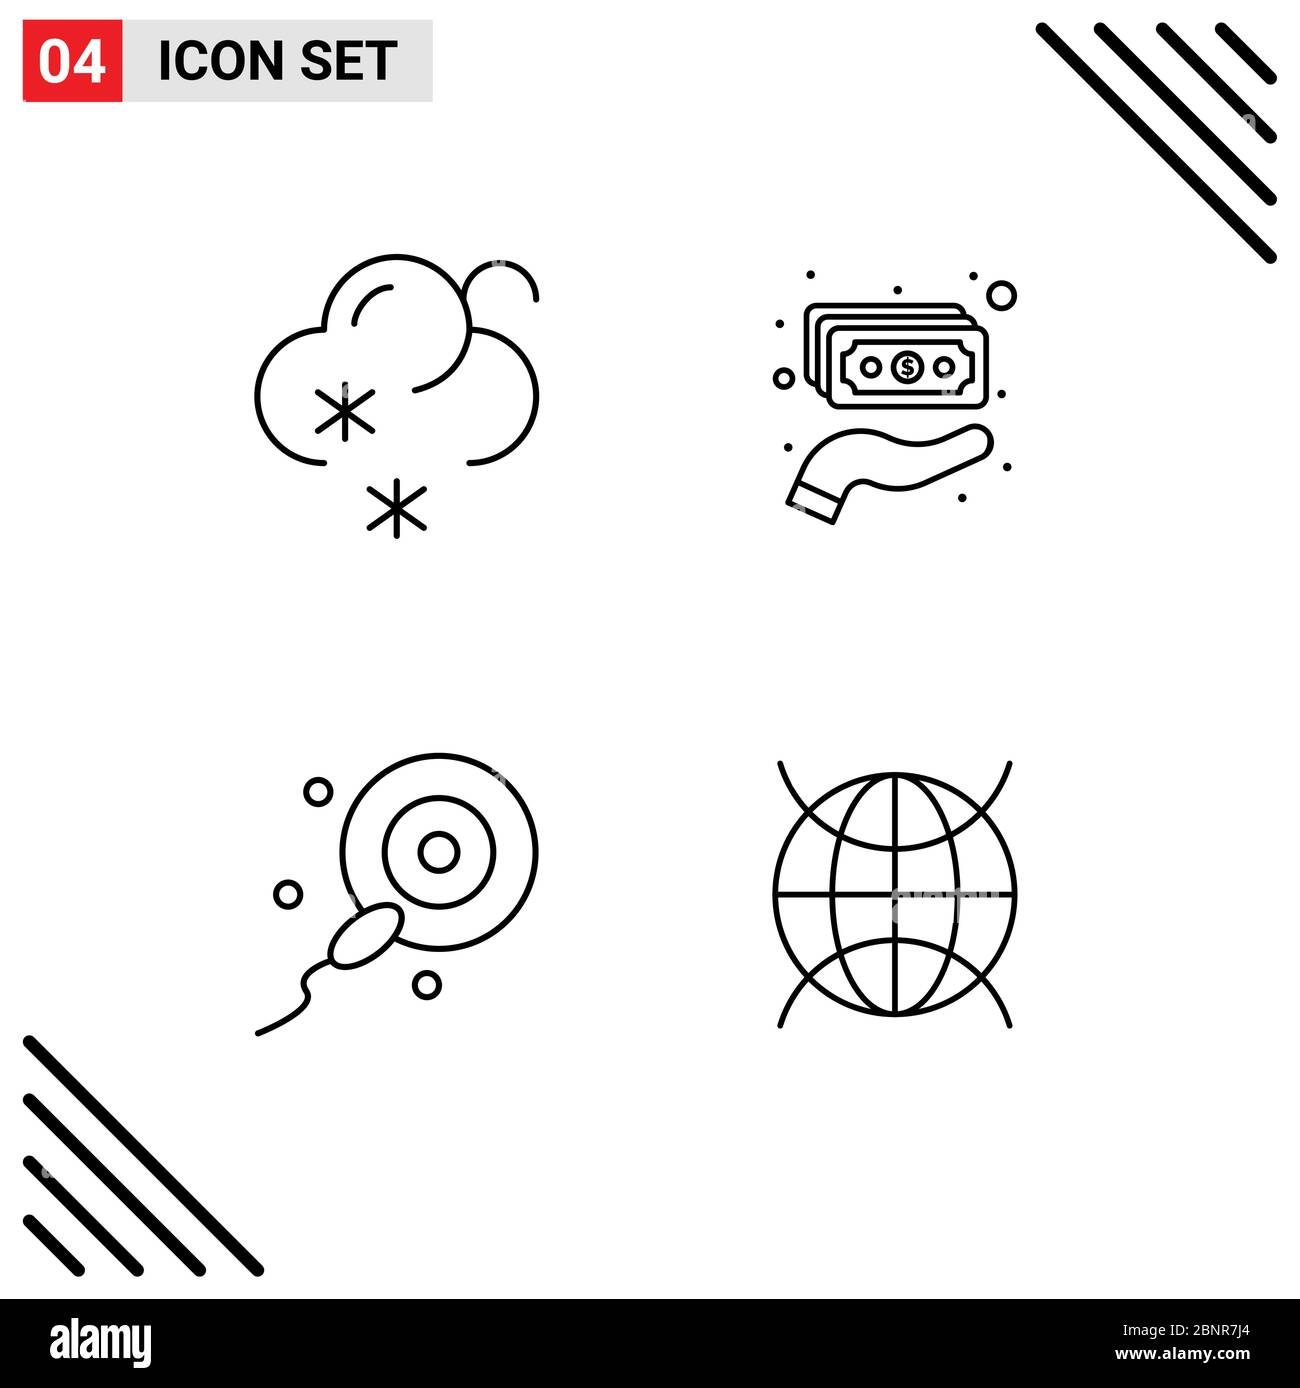 4 Line concept for Websites Mobile and Apps forecast, bio, cash, money, internet of things Editable Vector Design Elements Stock Vector